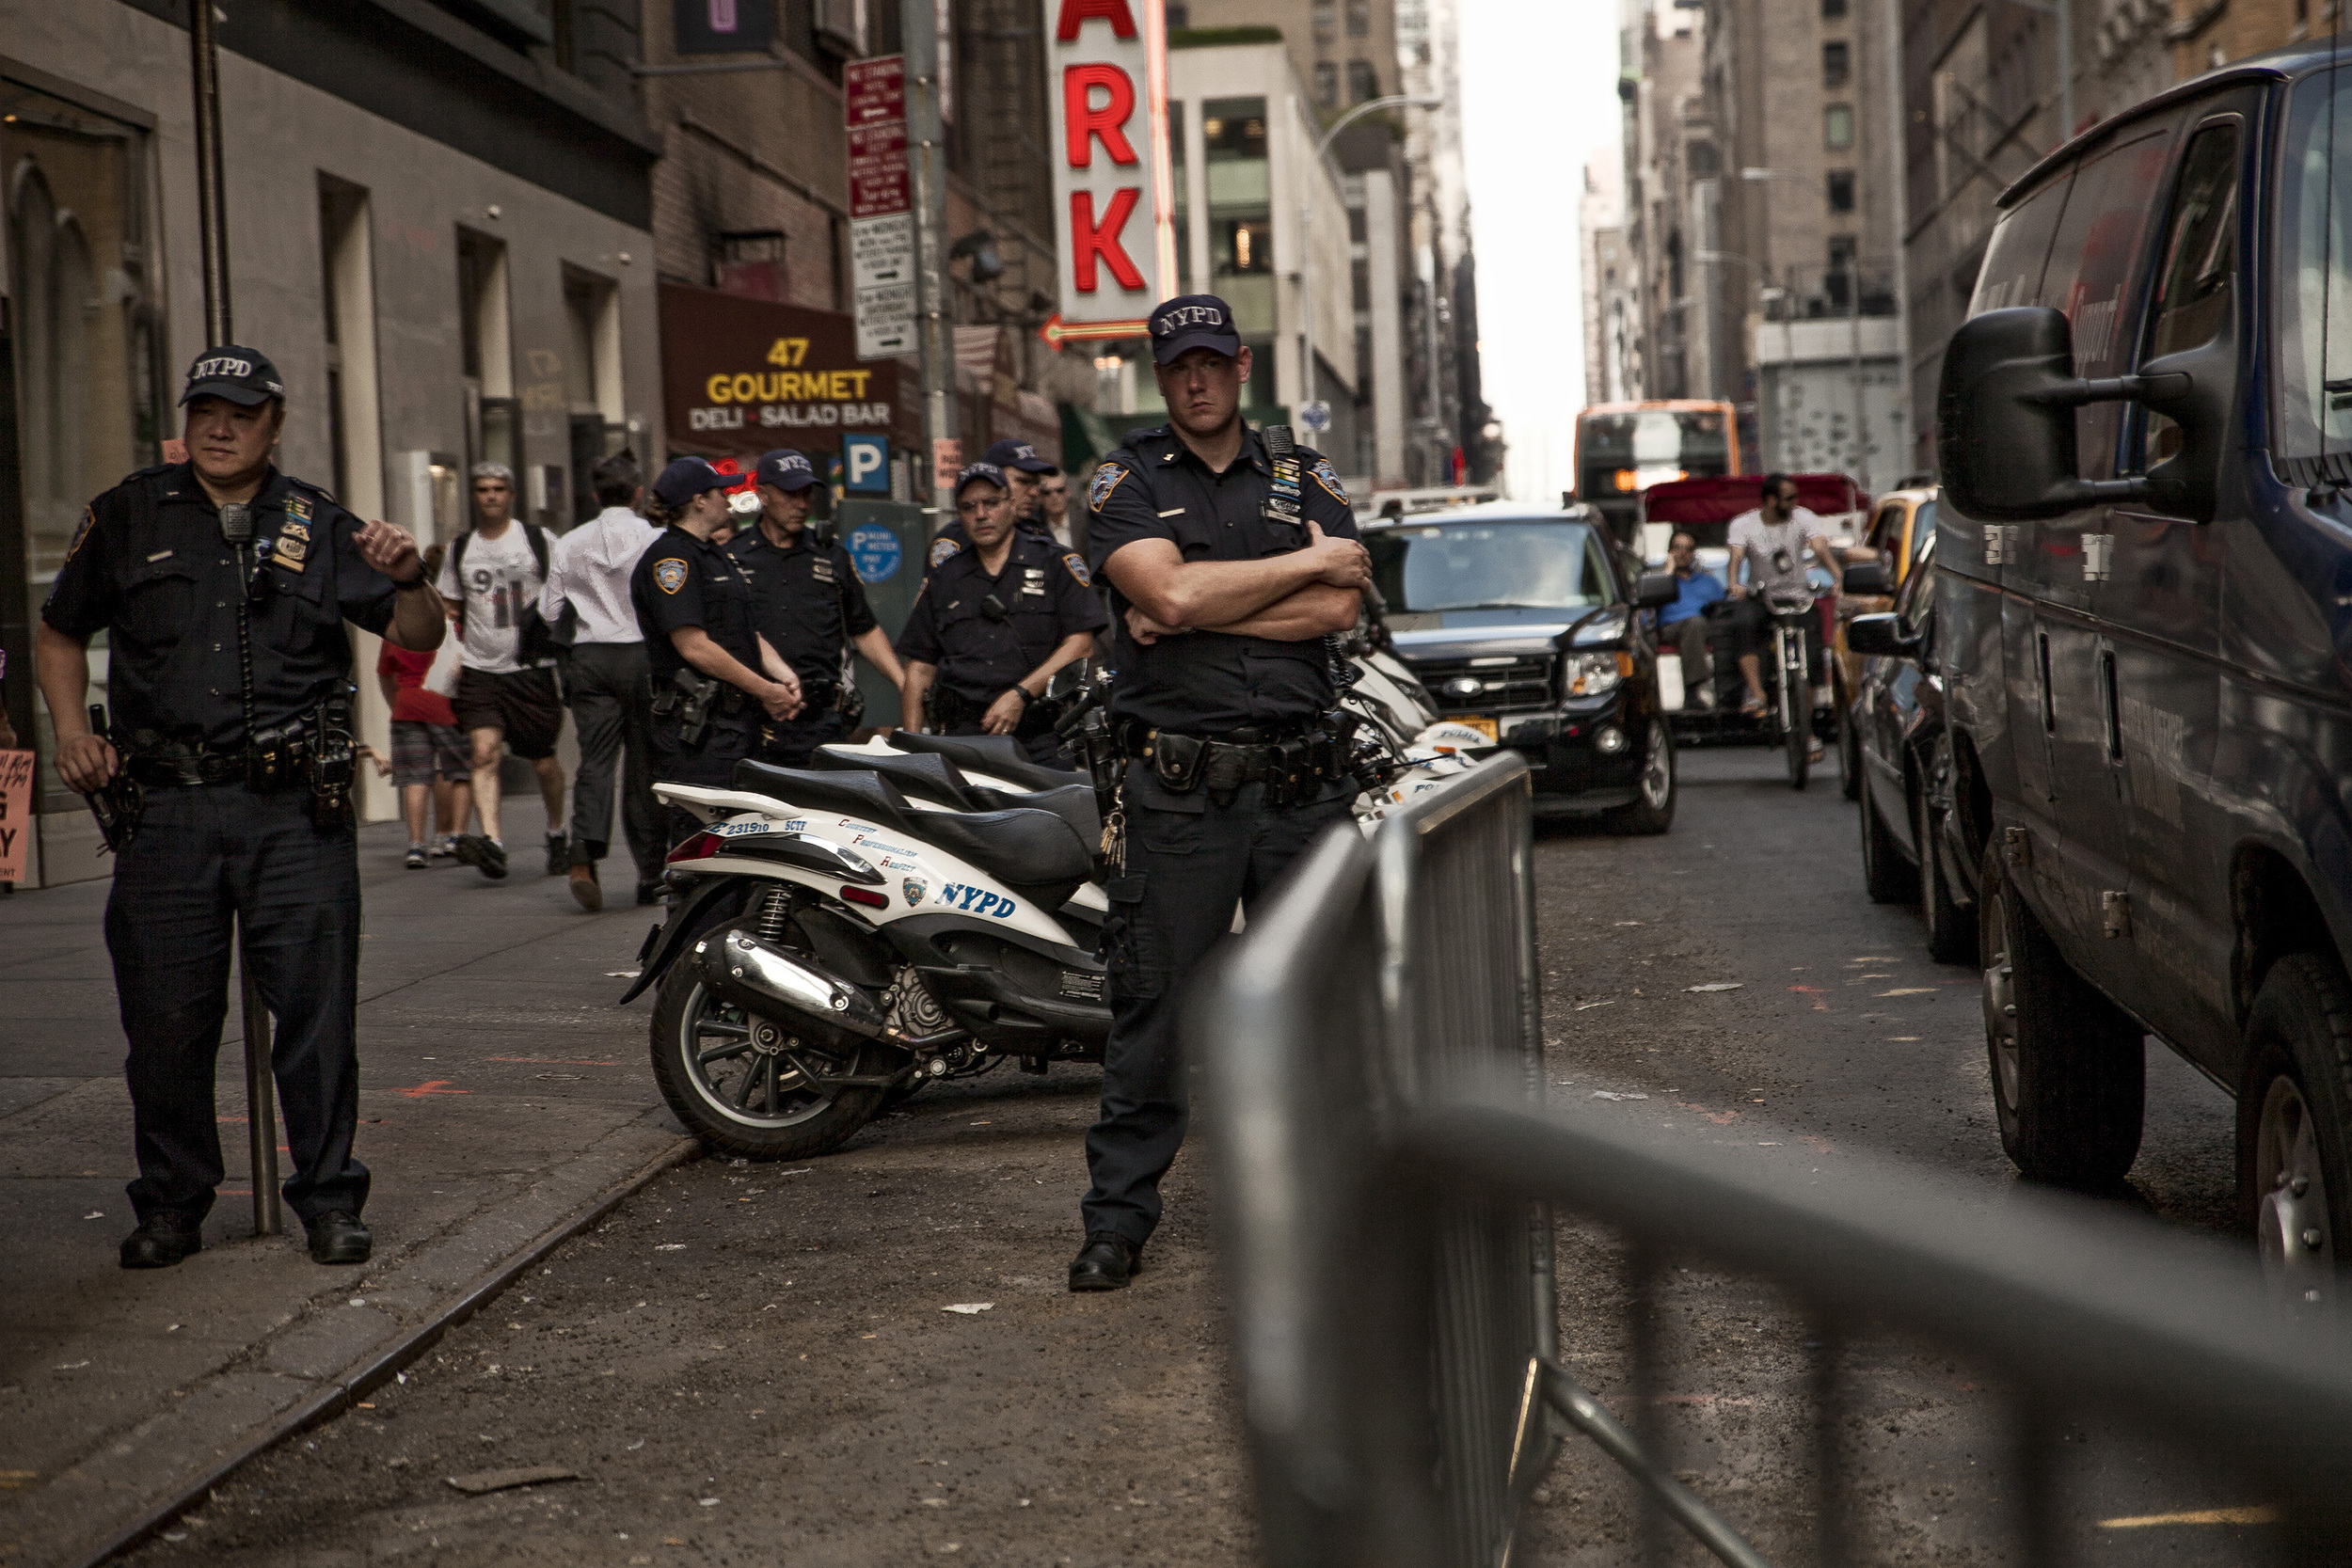 September, 2013 - New York, U.S.A.   NYPD monitor protests in Times Square sparked by police firing onGlenn Broadnax, 35, of Brooklyn, who was later found to be unarmed. Broadnax was unharmed however two tourist bystanders were wounded